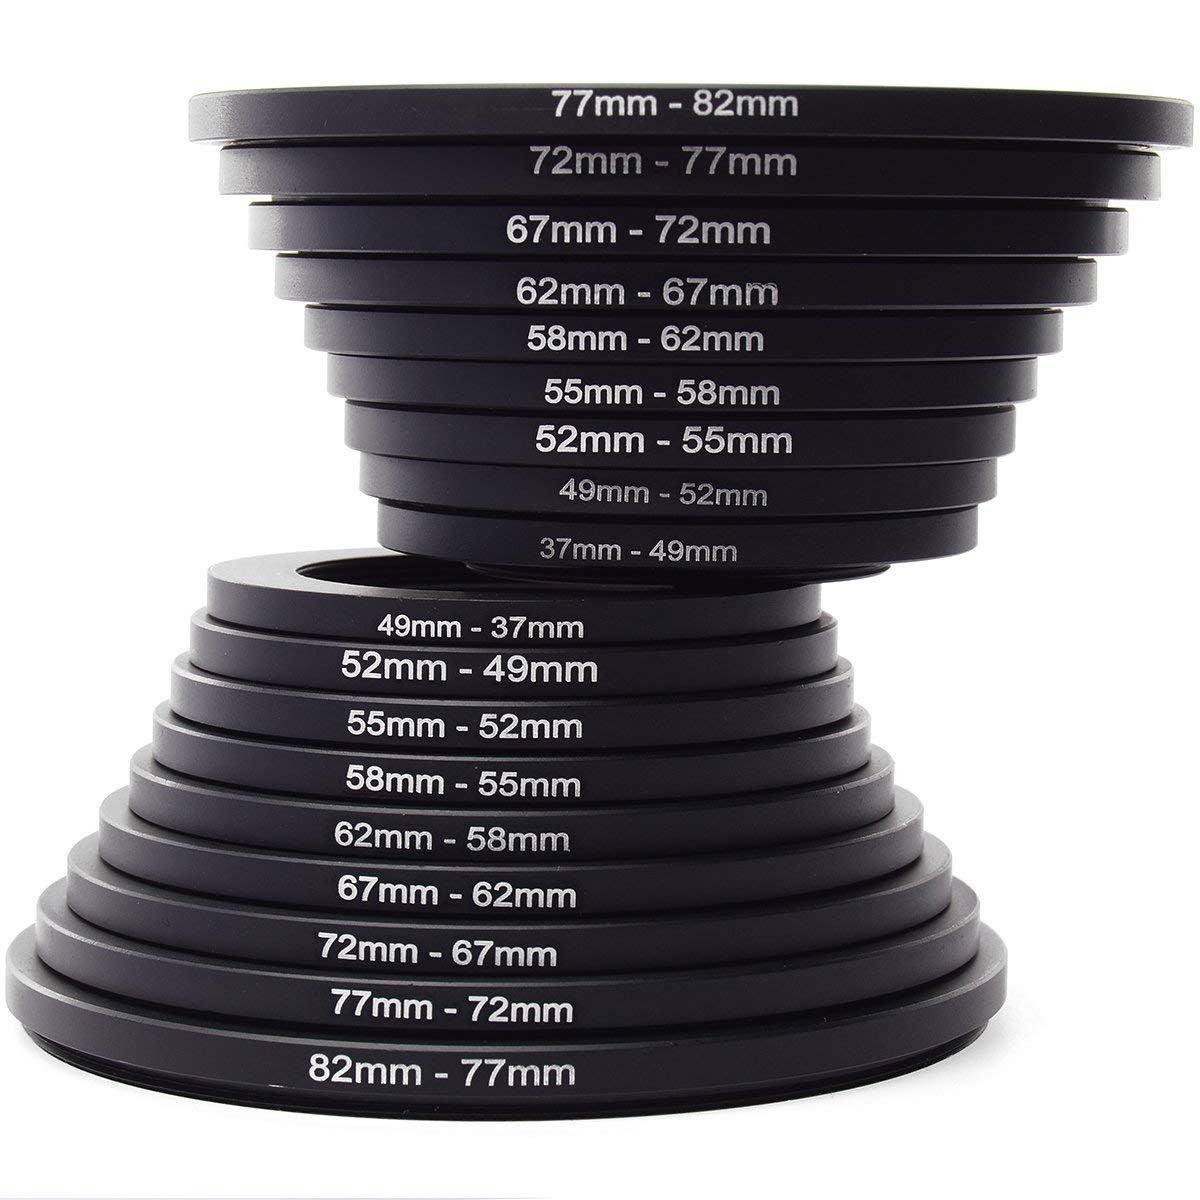 55-52 mm Anodized Black Aluminum 55mm-52mm Fotodiox Metal Step Down Ring Filter Adapter